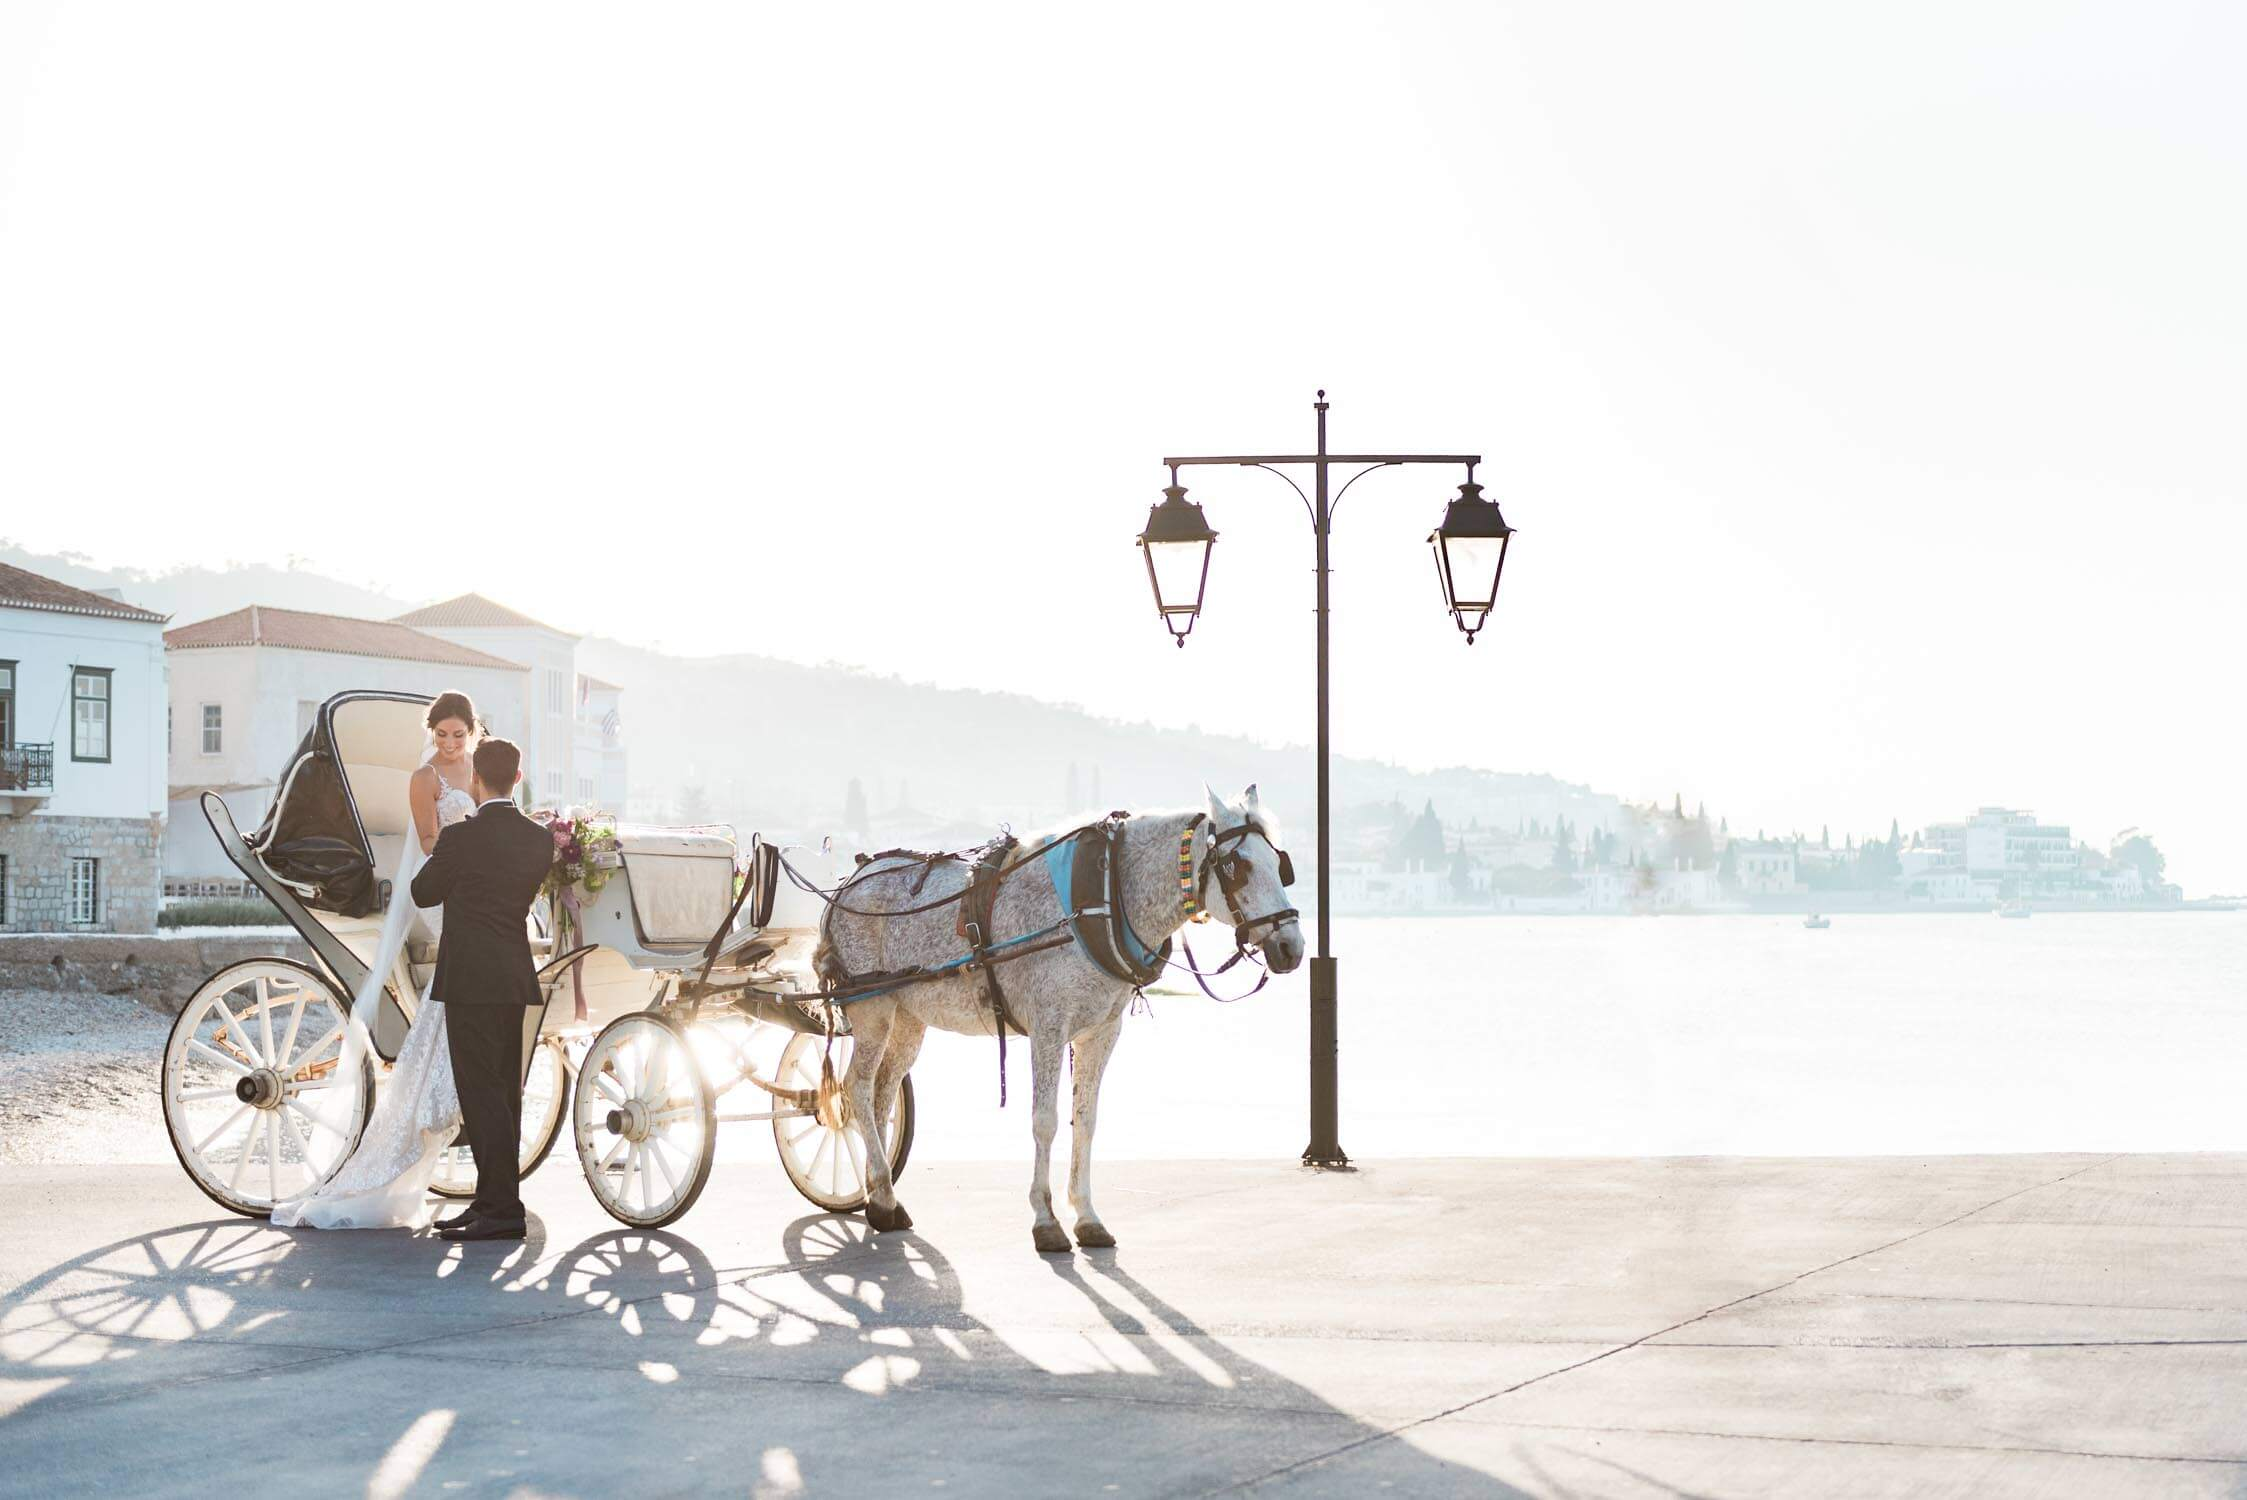 Spetses-Wedding-photographer-at-Poseidonion-Grand-Hotel-in-Greece-Wit-Photography-52-2